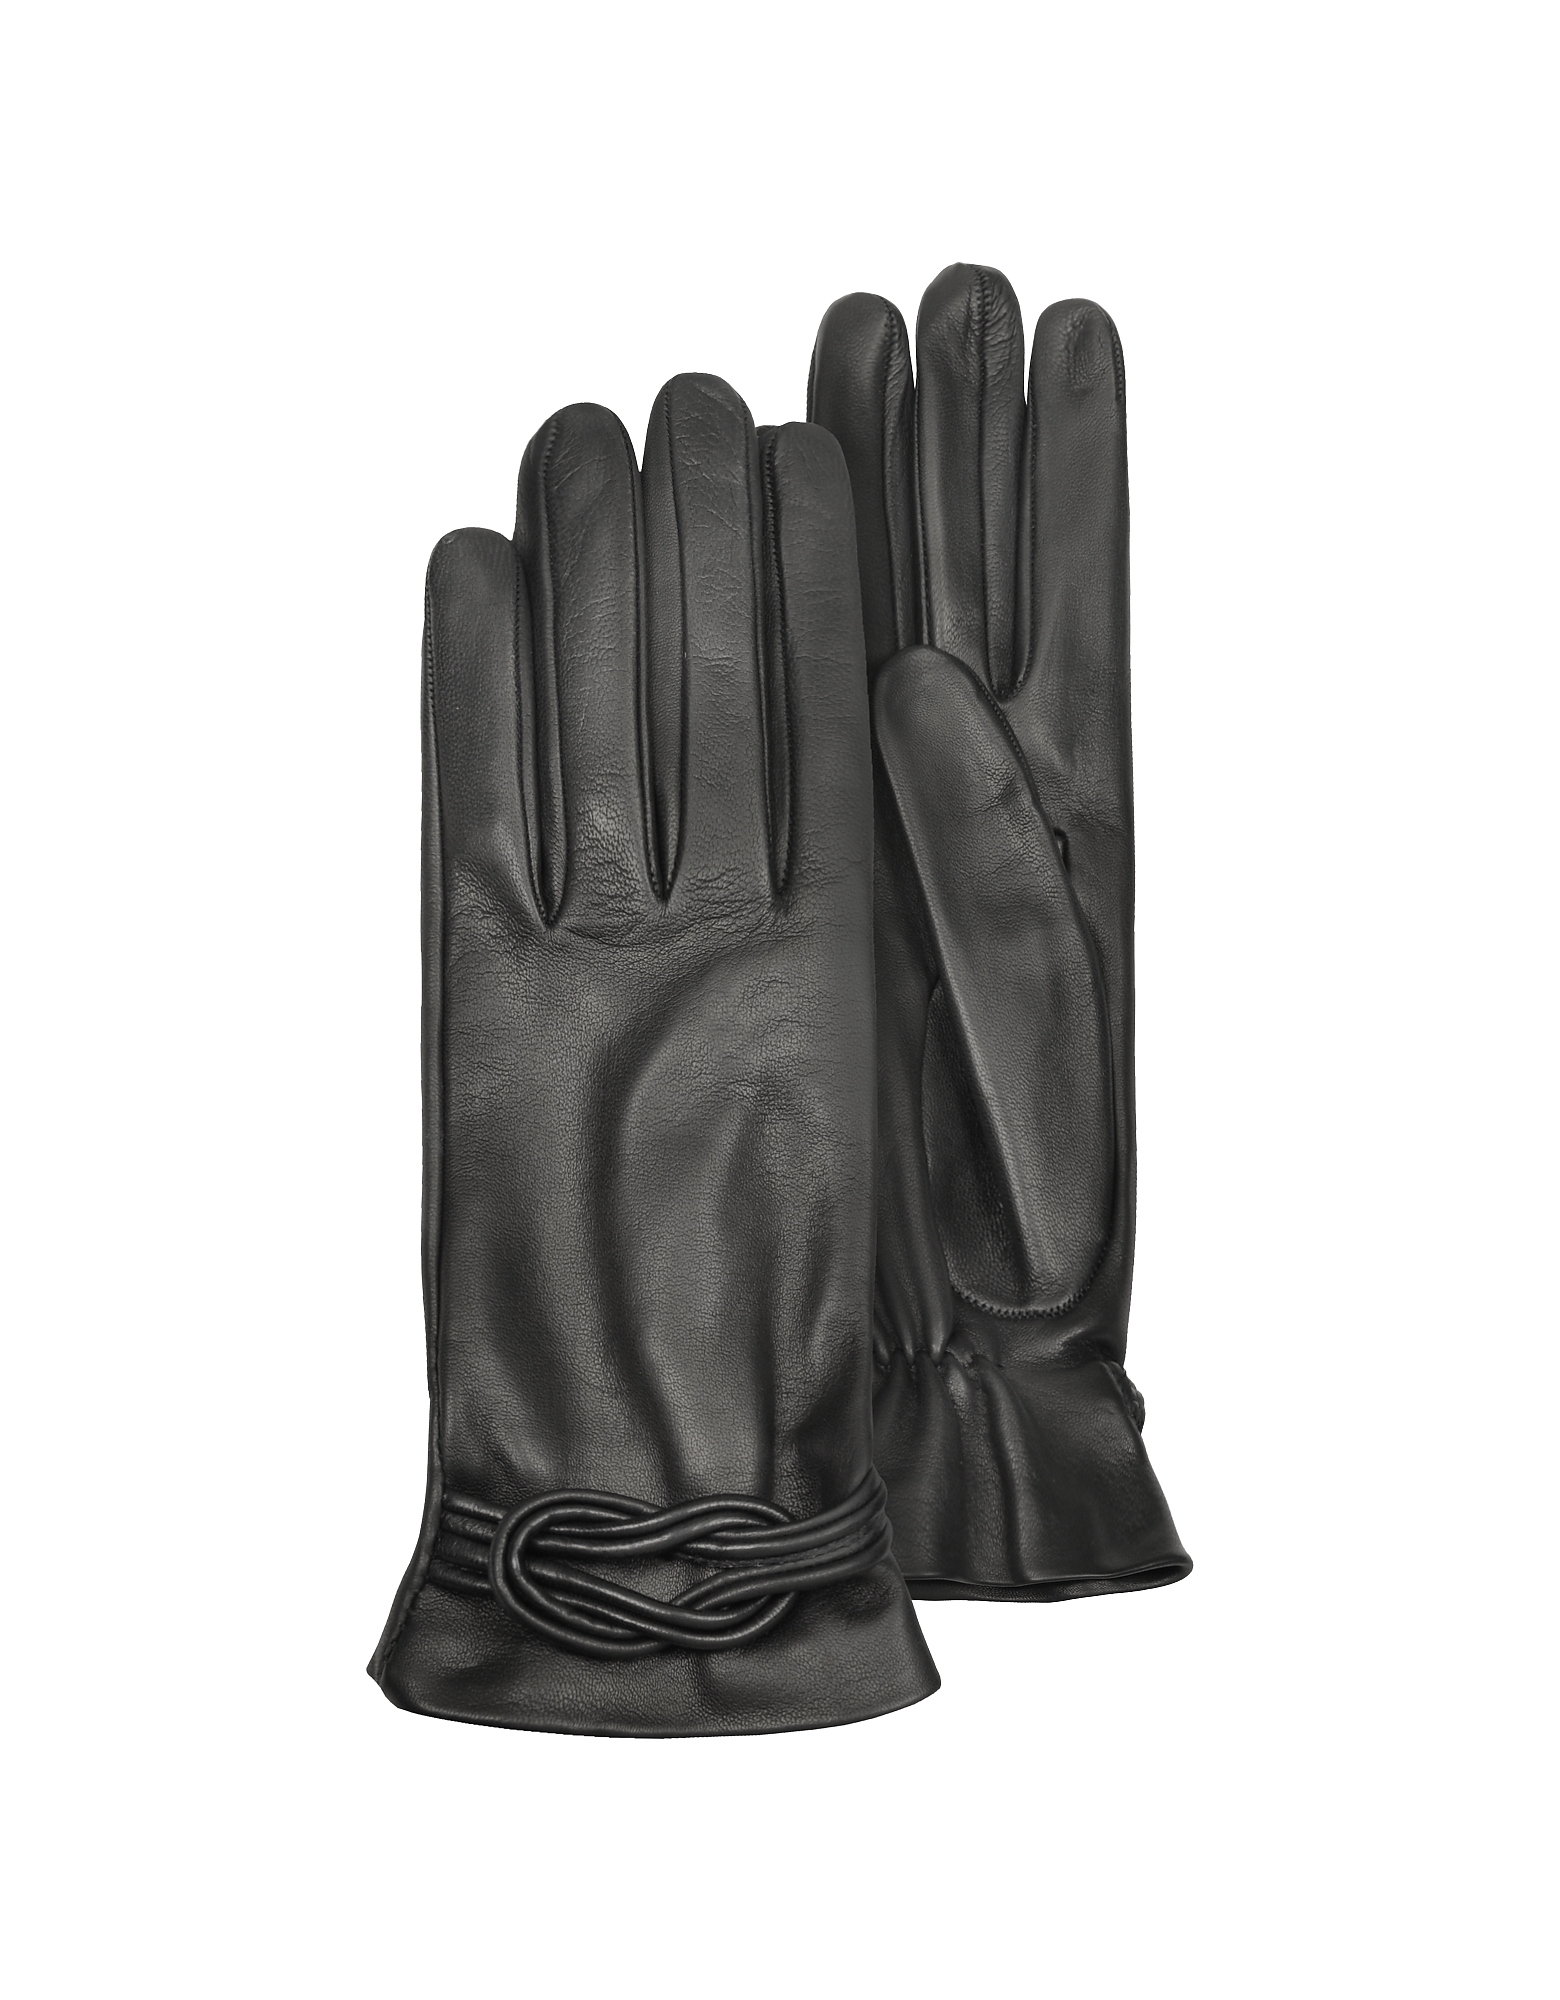 Forzieri Designer Women's Gloves, Women's Black Leather Gloves w/ Knot